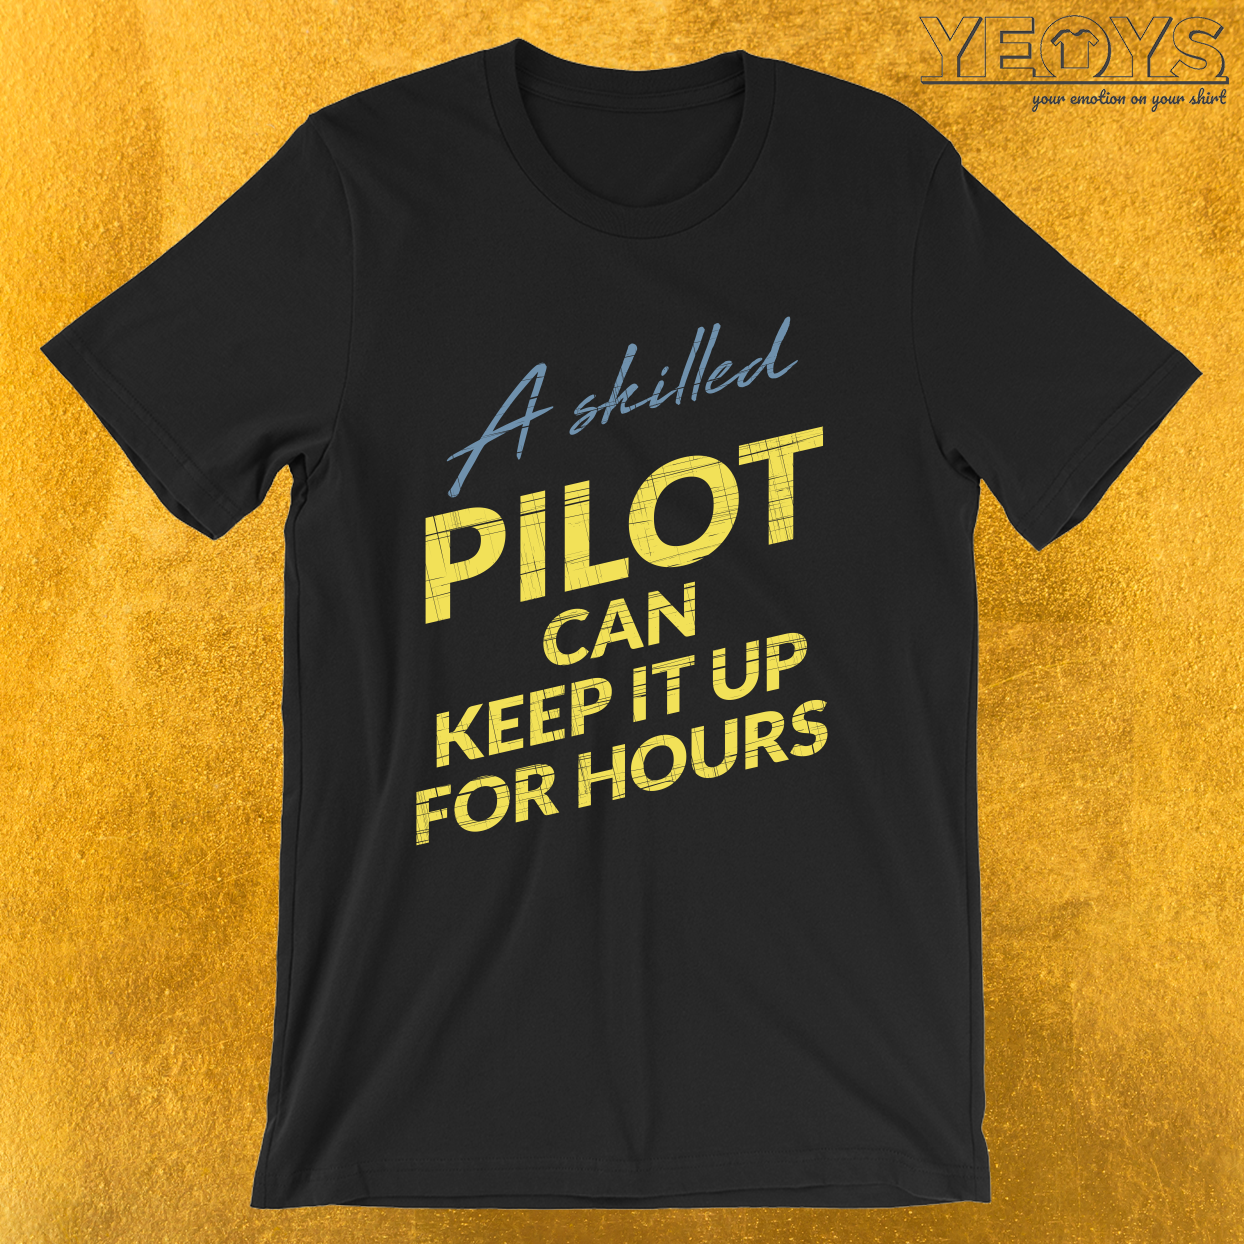 A Skilled Pilot Can Keep It Up For Hours – Funny Aviation Tee